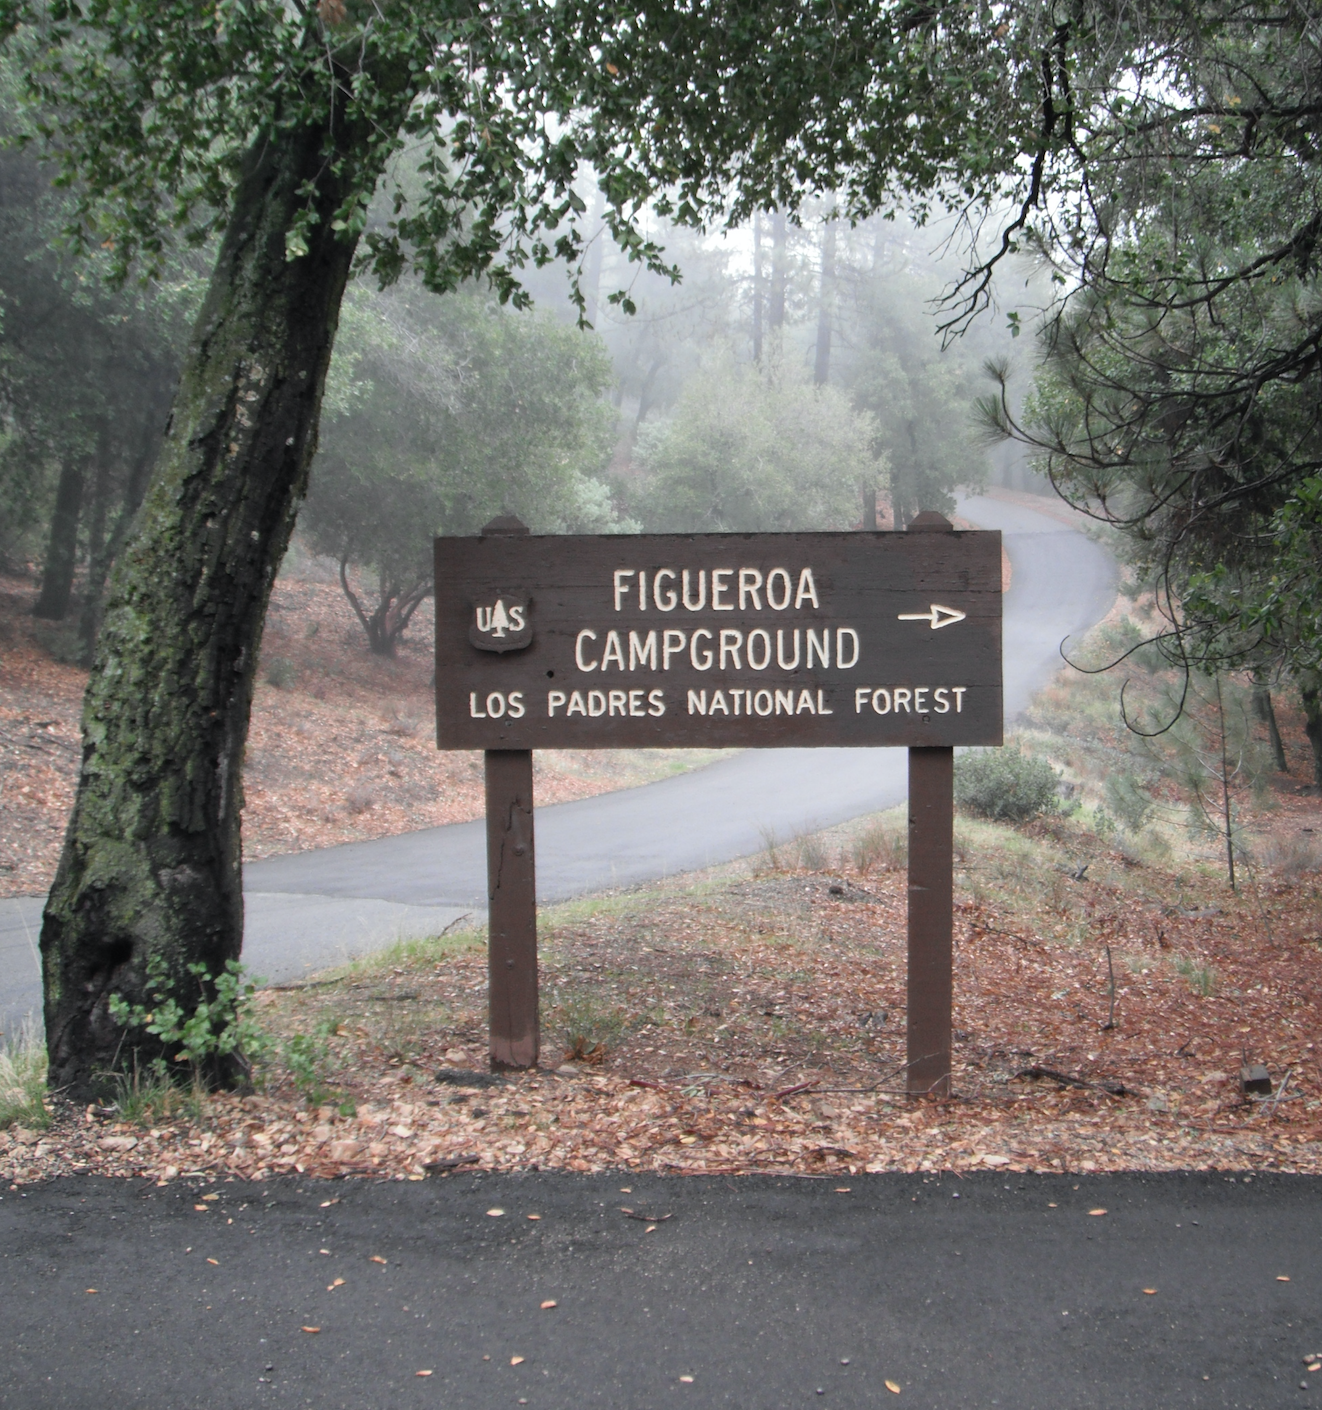 Camping Cabins National Forest Nm: Figueroa Campground - Los Padres